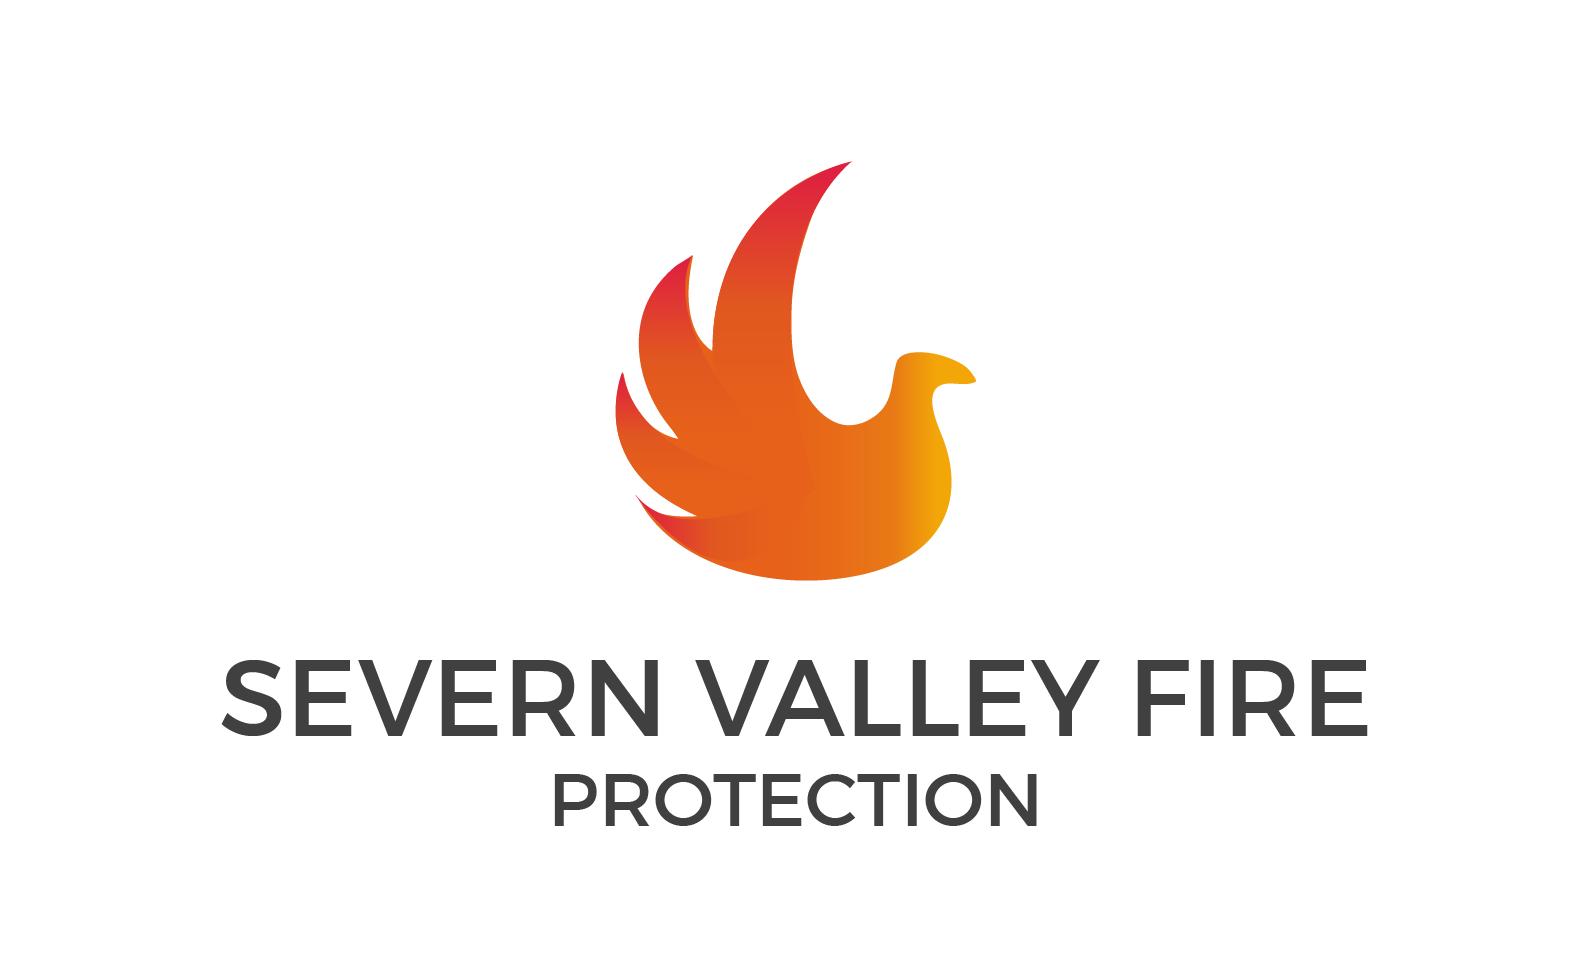 New severn valley logo-01.png